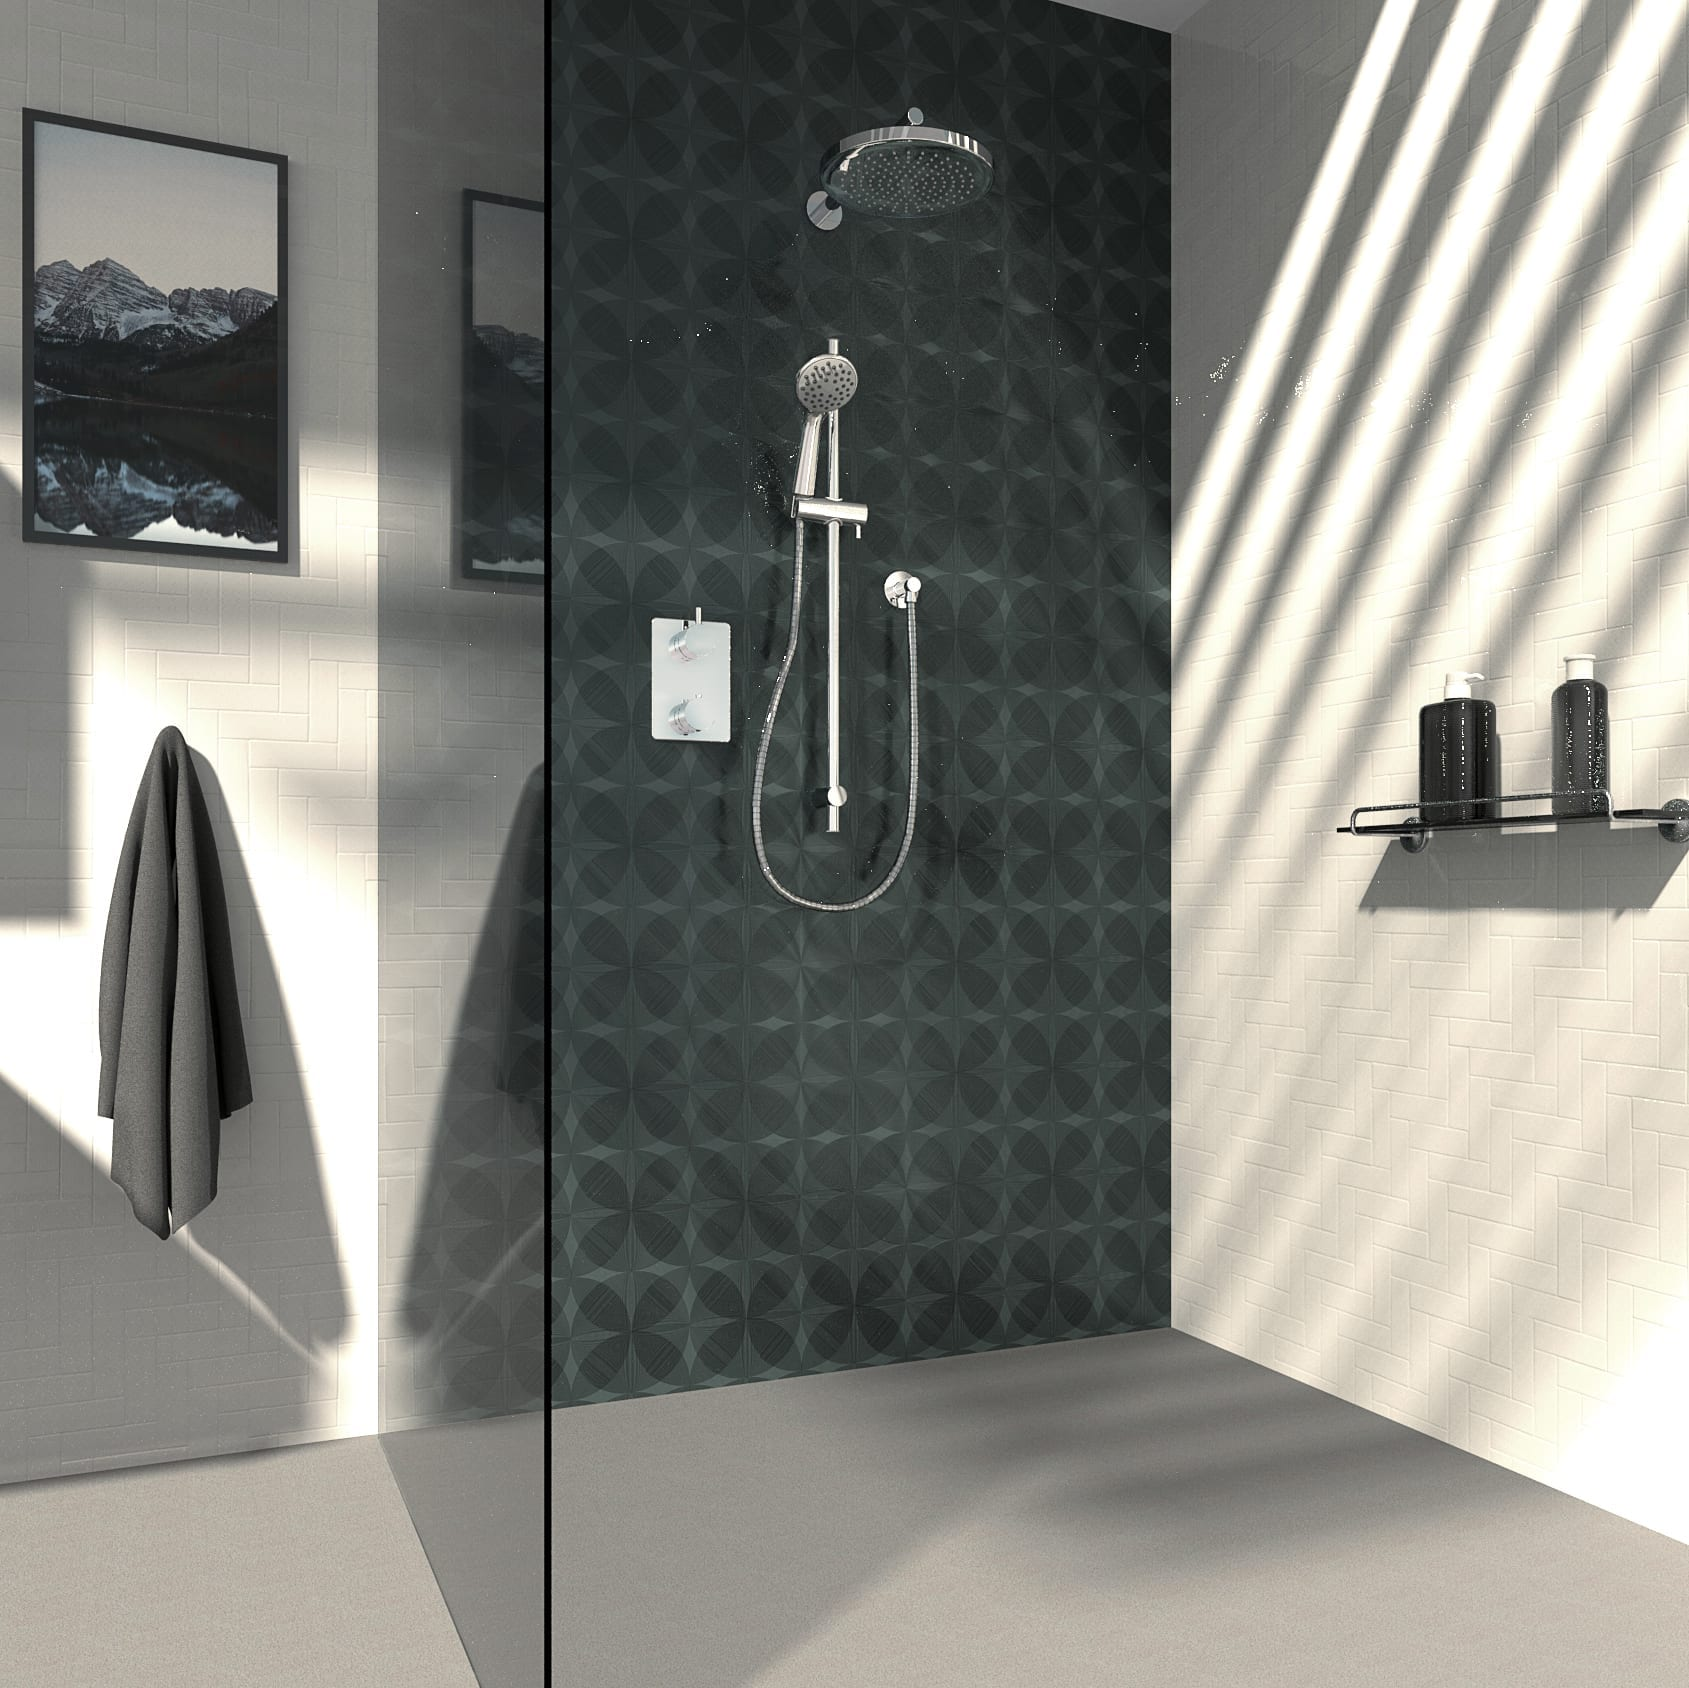 Kit: Shower Faucet - Complete model for Thermostatic